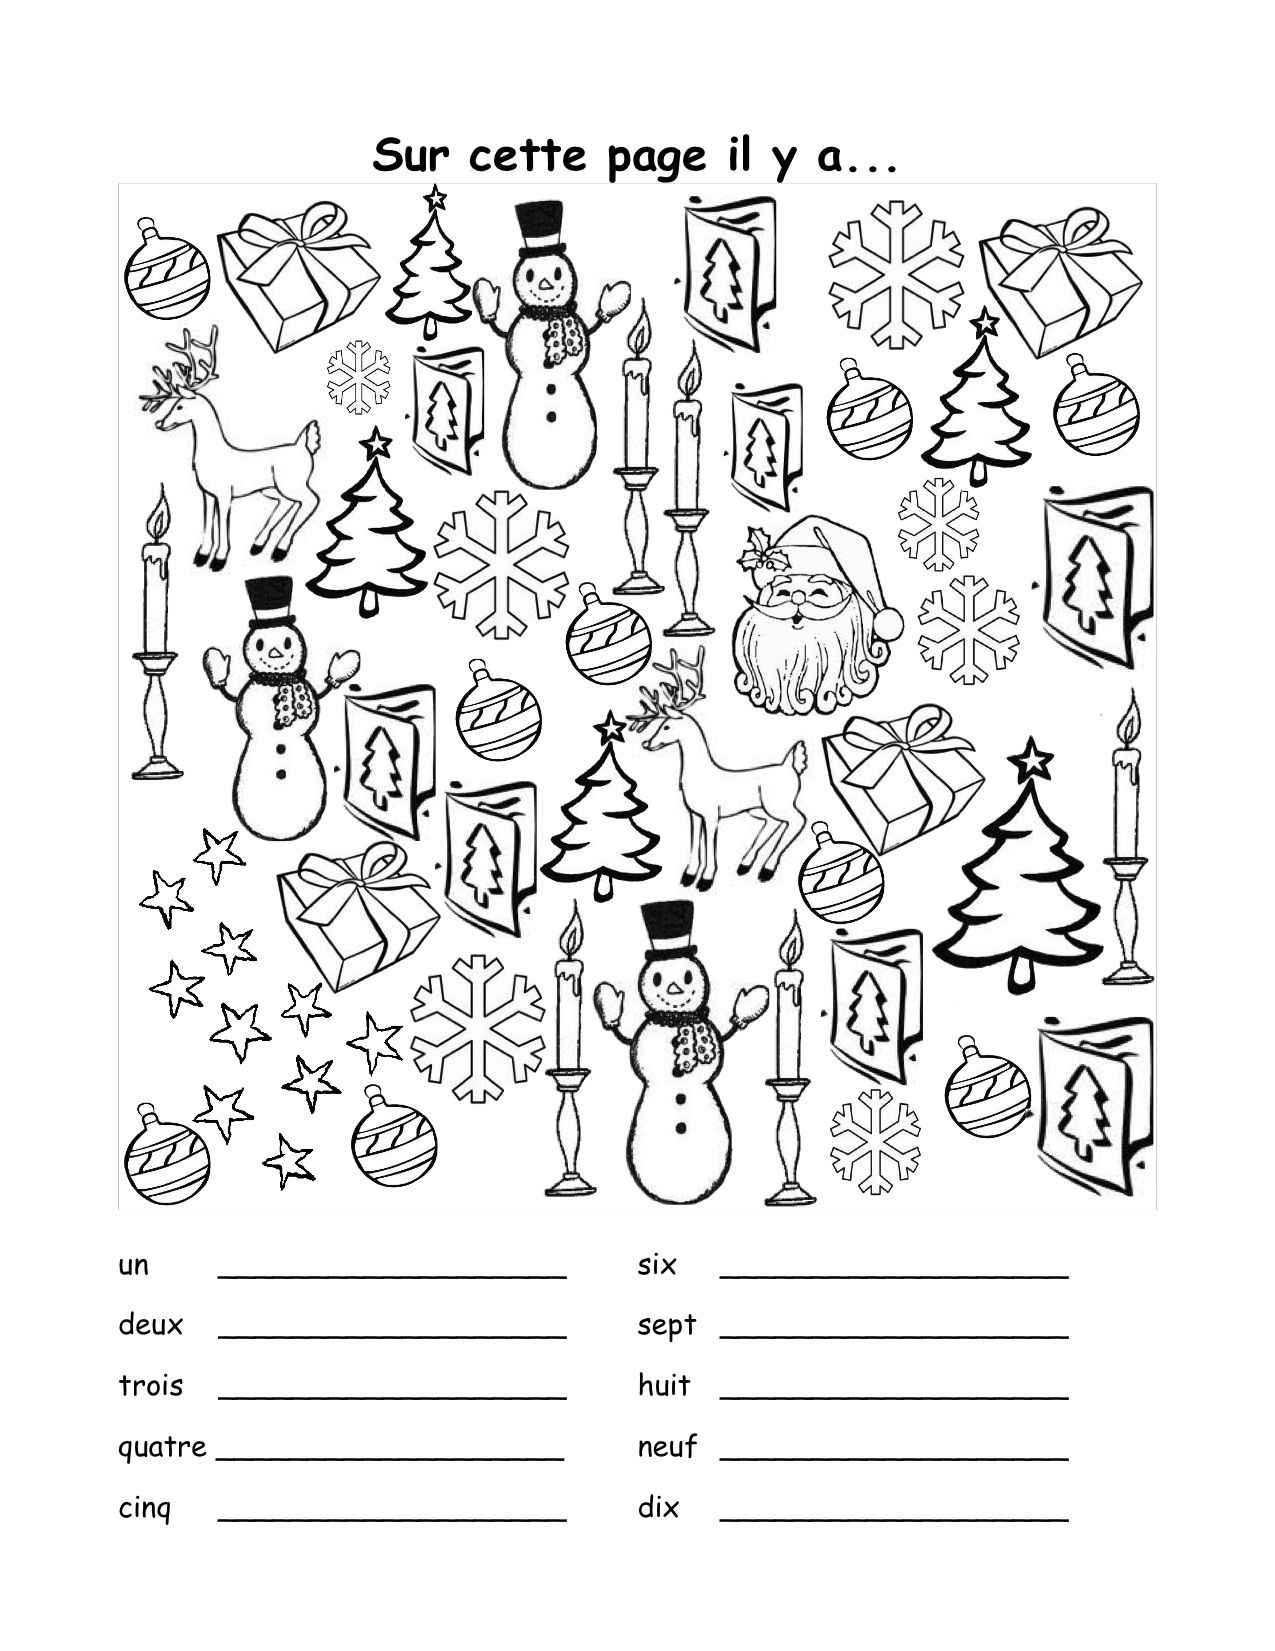 french christmas vocab sheet includes practice with numbers as well joyeux noel yup i 39 m a. Black Bedroom Furniture Sets. Home Design Ideas